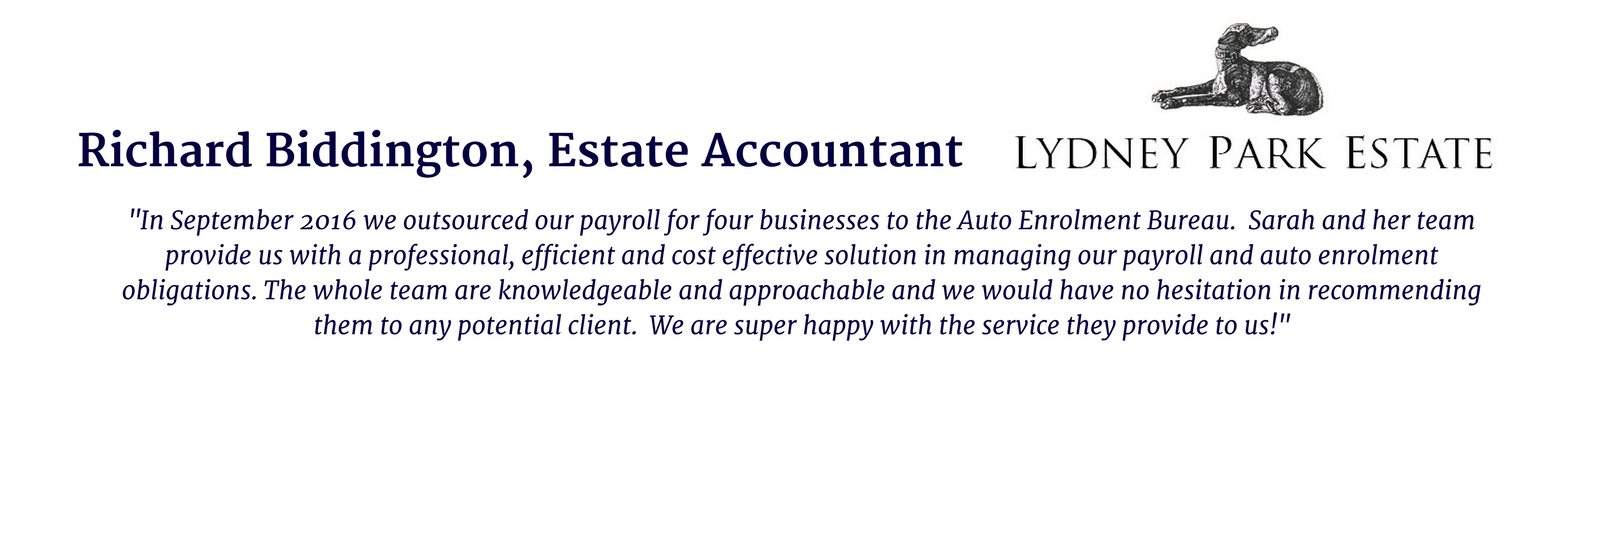 Richard Biddington, Estate Accountant, Lydney Park Estate